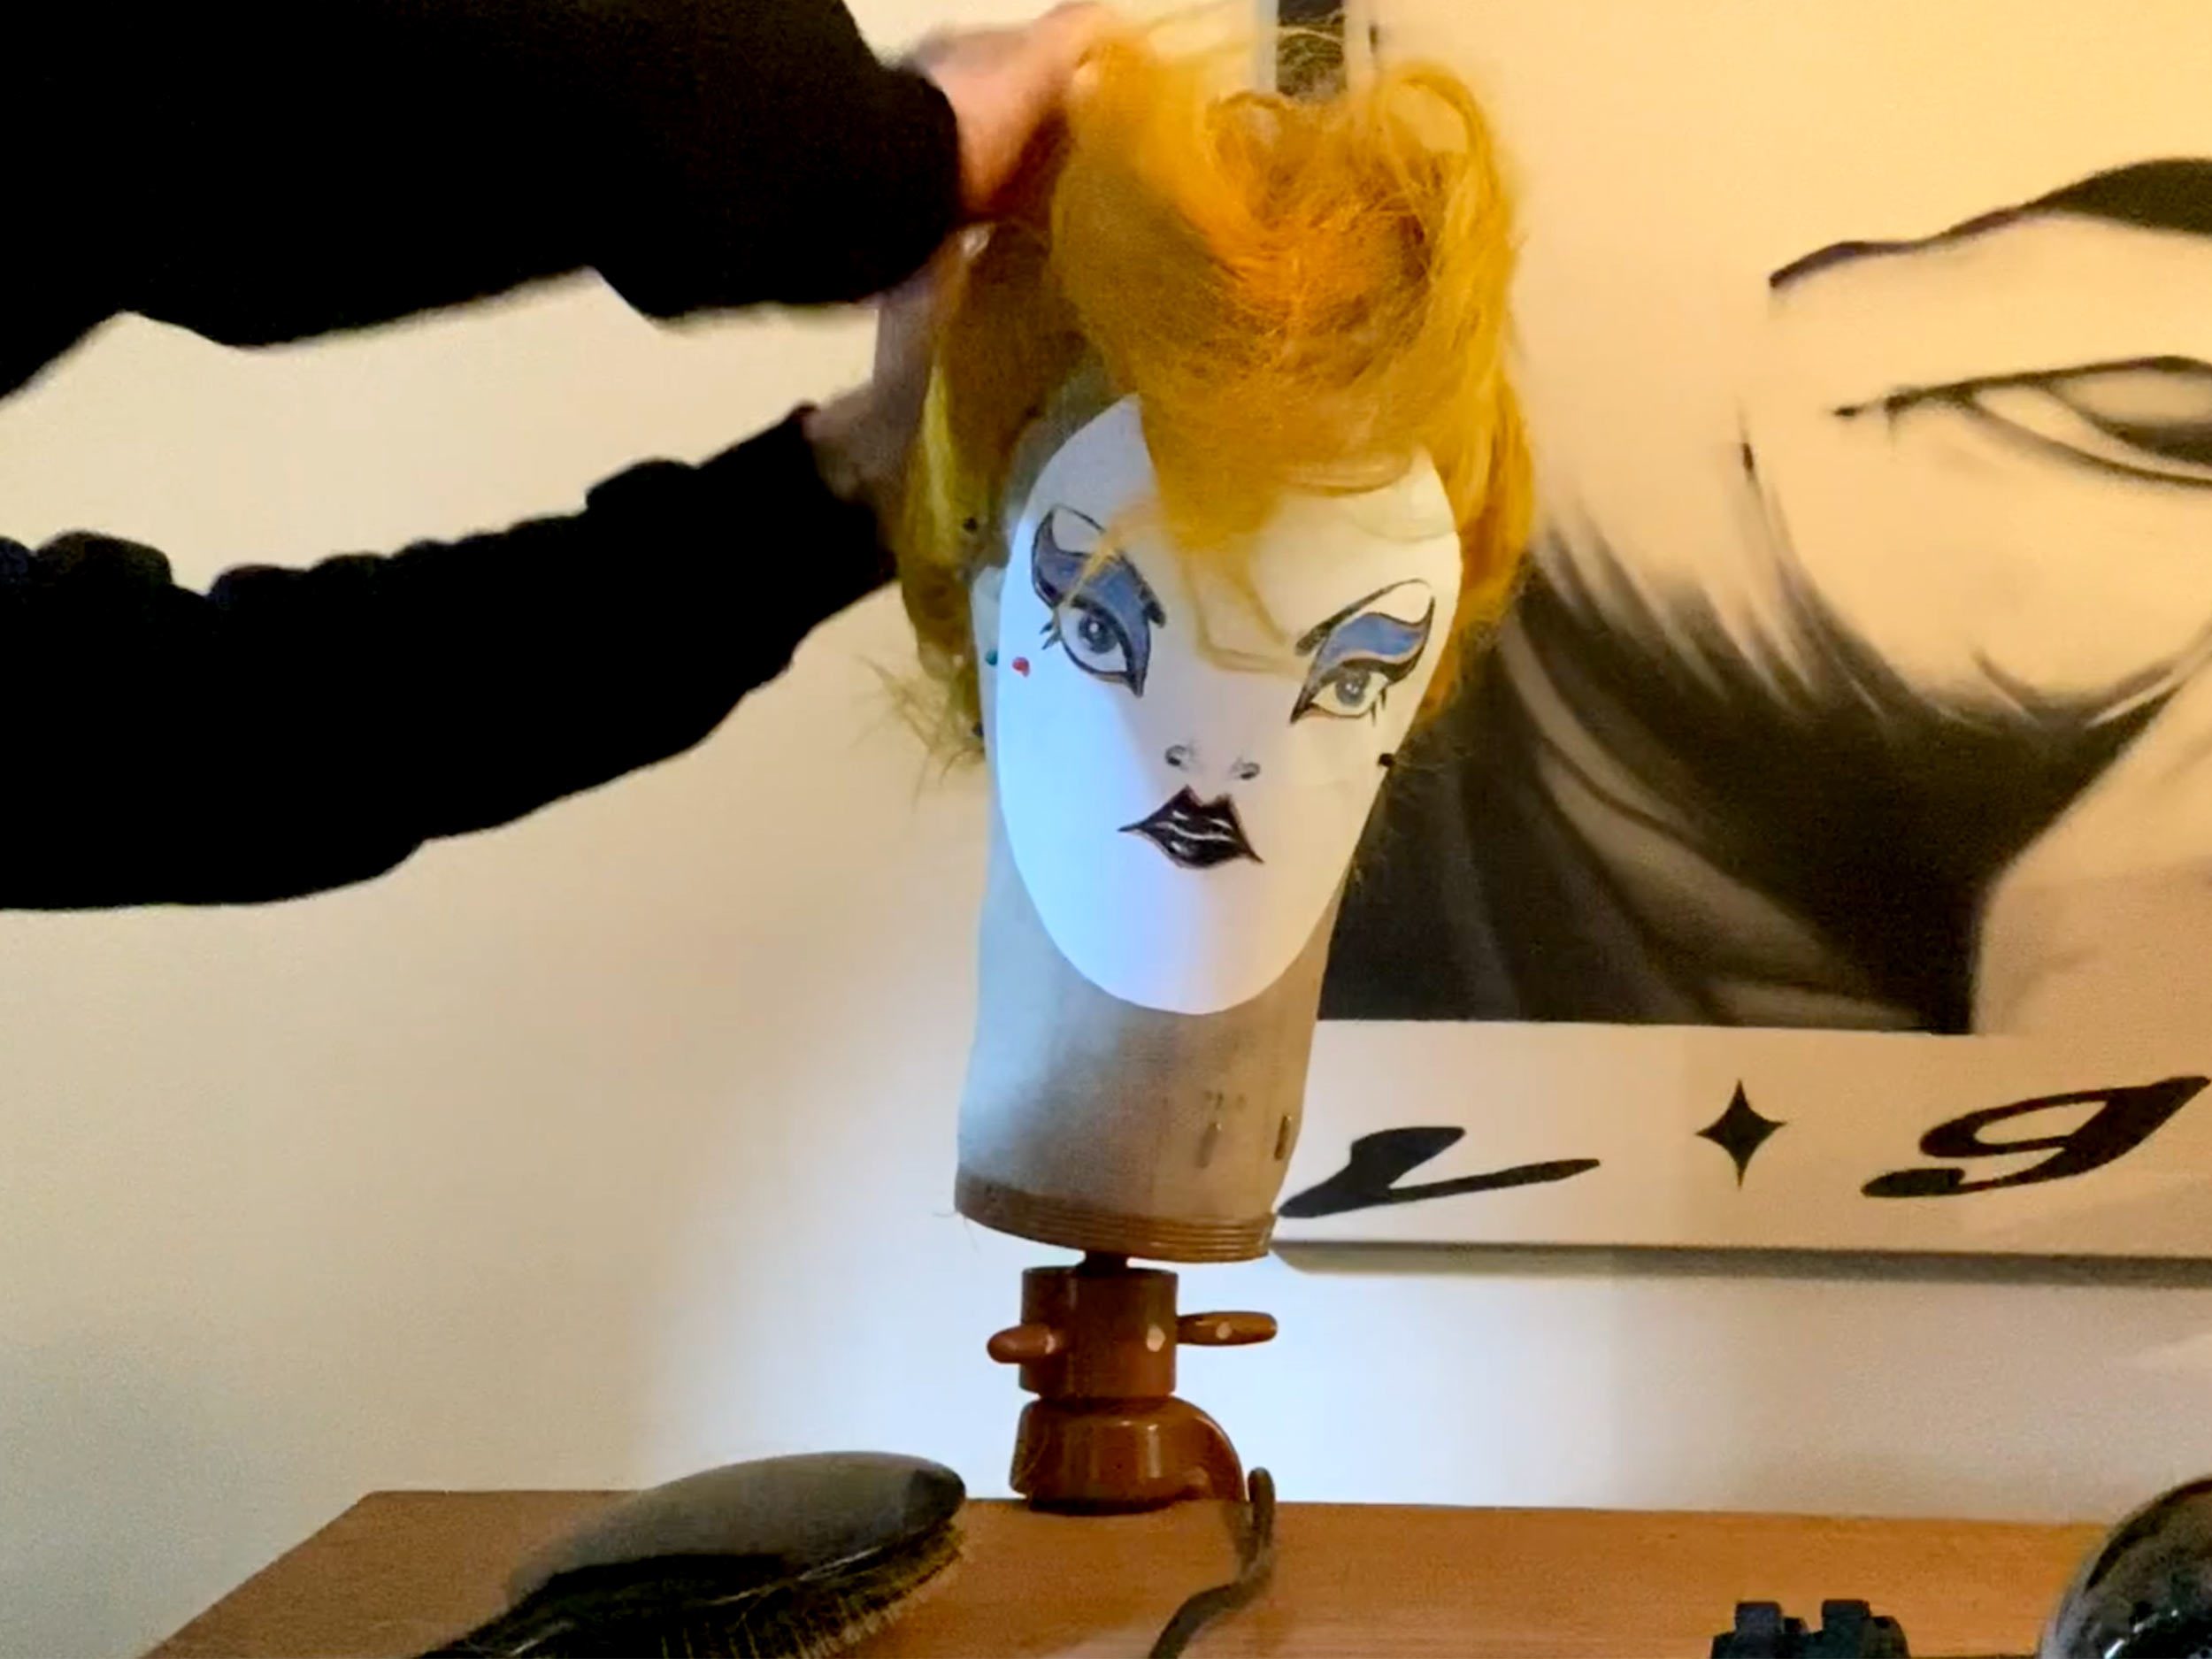 Watch Anthony Turner give a sad wig a '70s New Romantic makeover